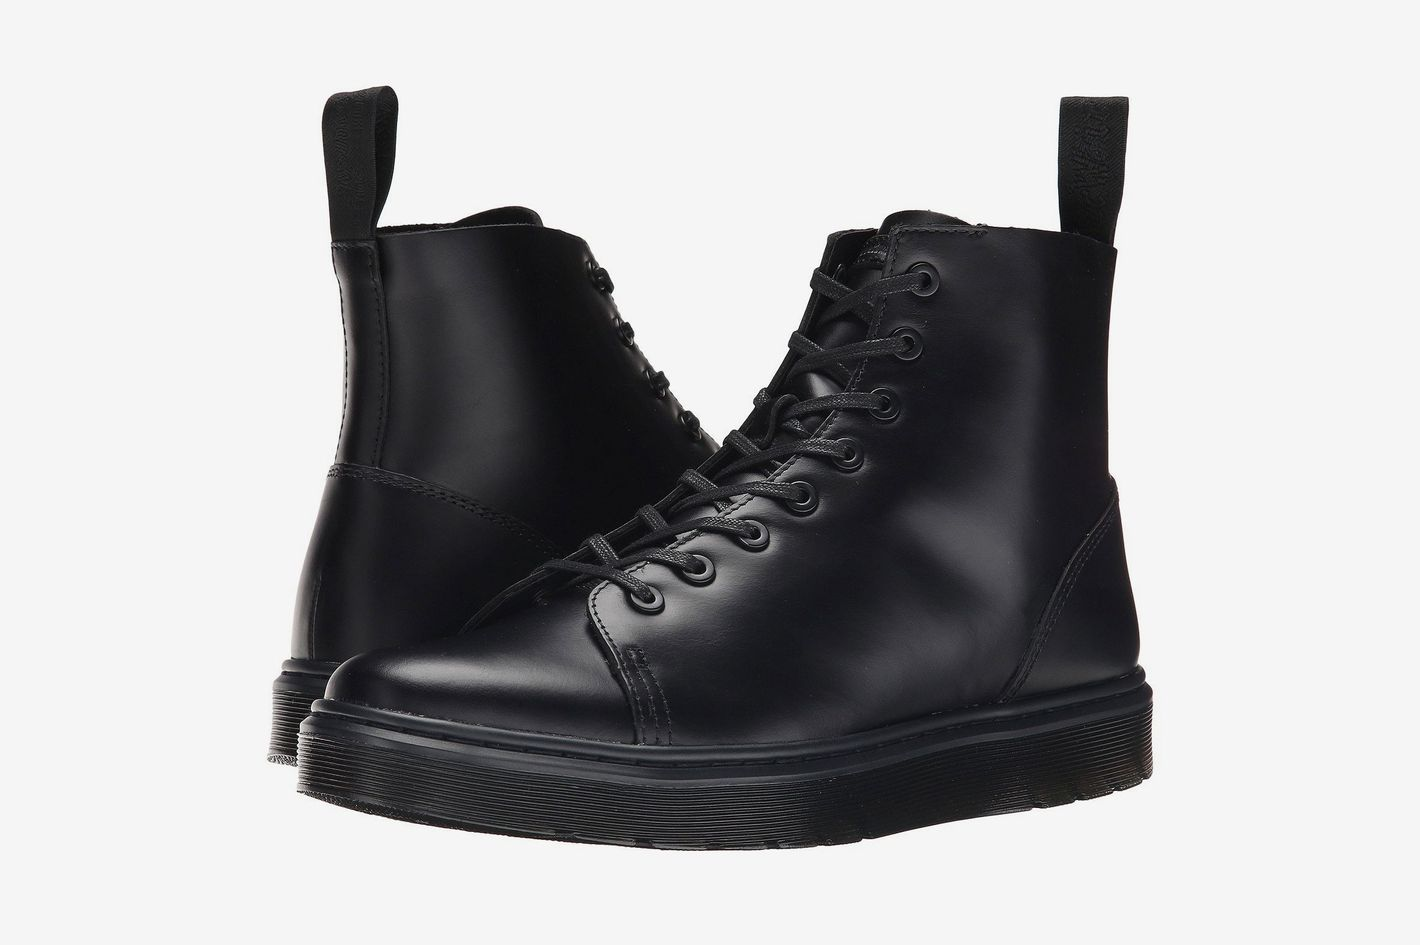 3baa34195fa5 11 Best Men s Combat Boots for Stylish Men 2018